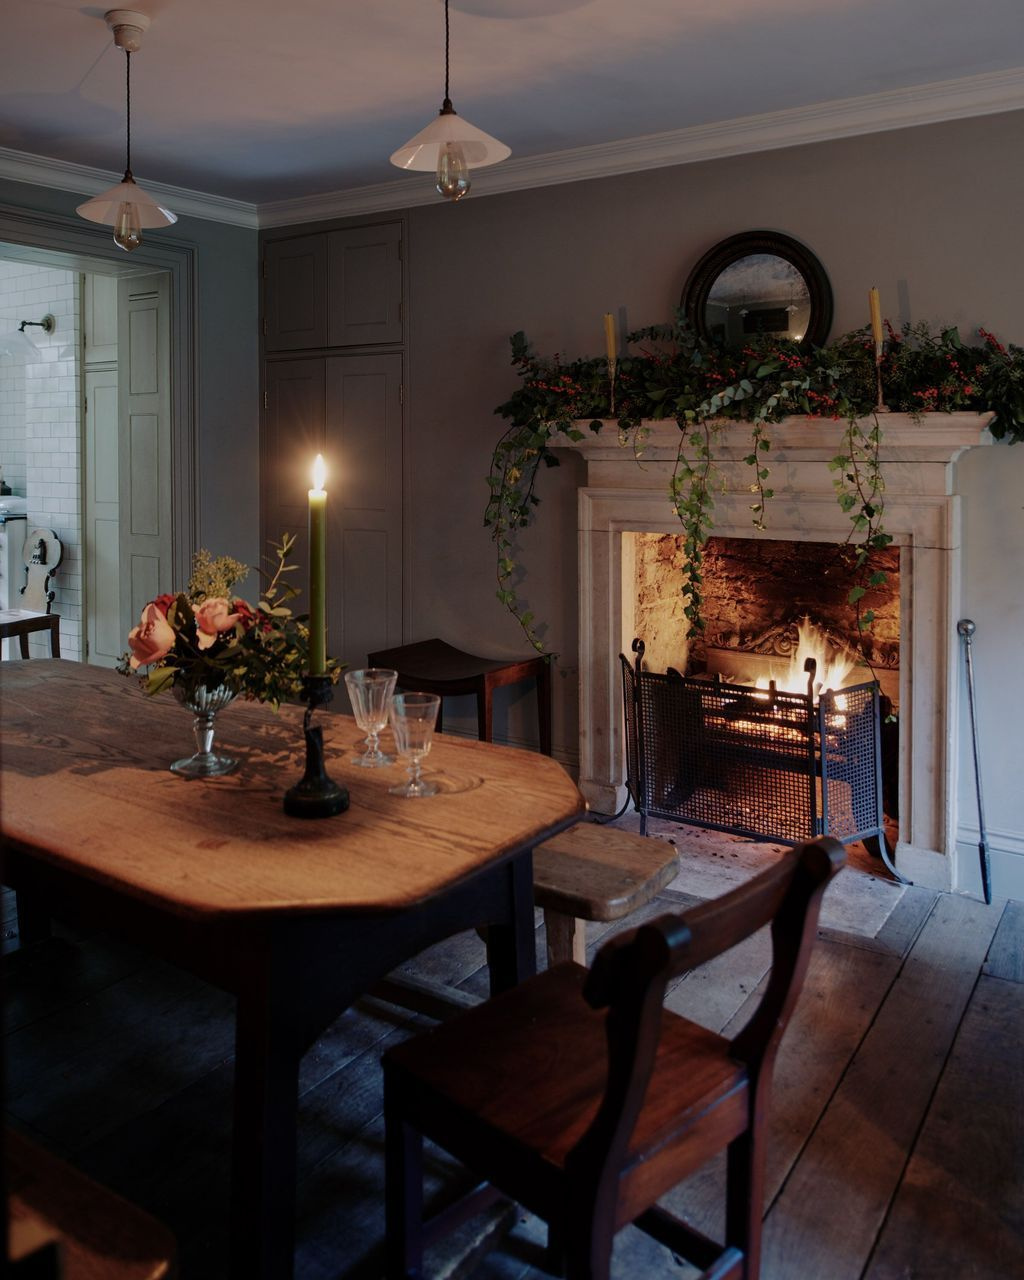 31 Amazing Dining Room Decor Ideas With Fireplace Country House Decor Country Cottage Decor Cosy Dining Room Cosy dining room decor